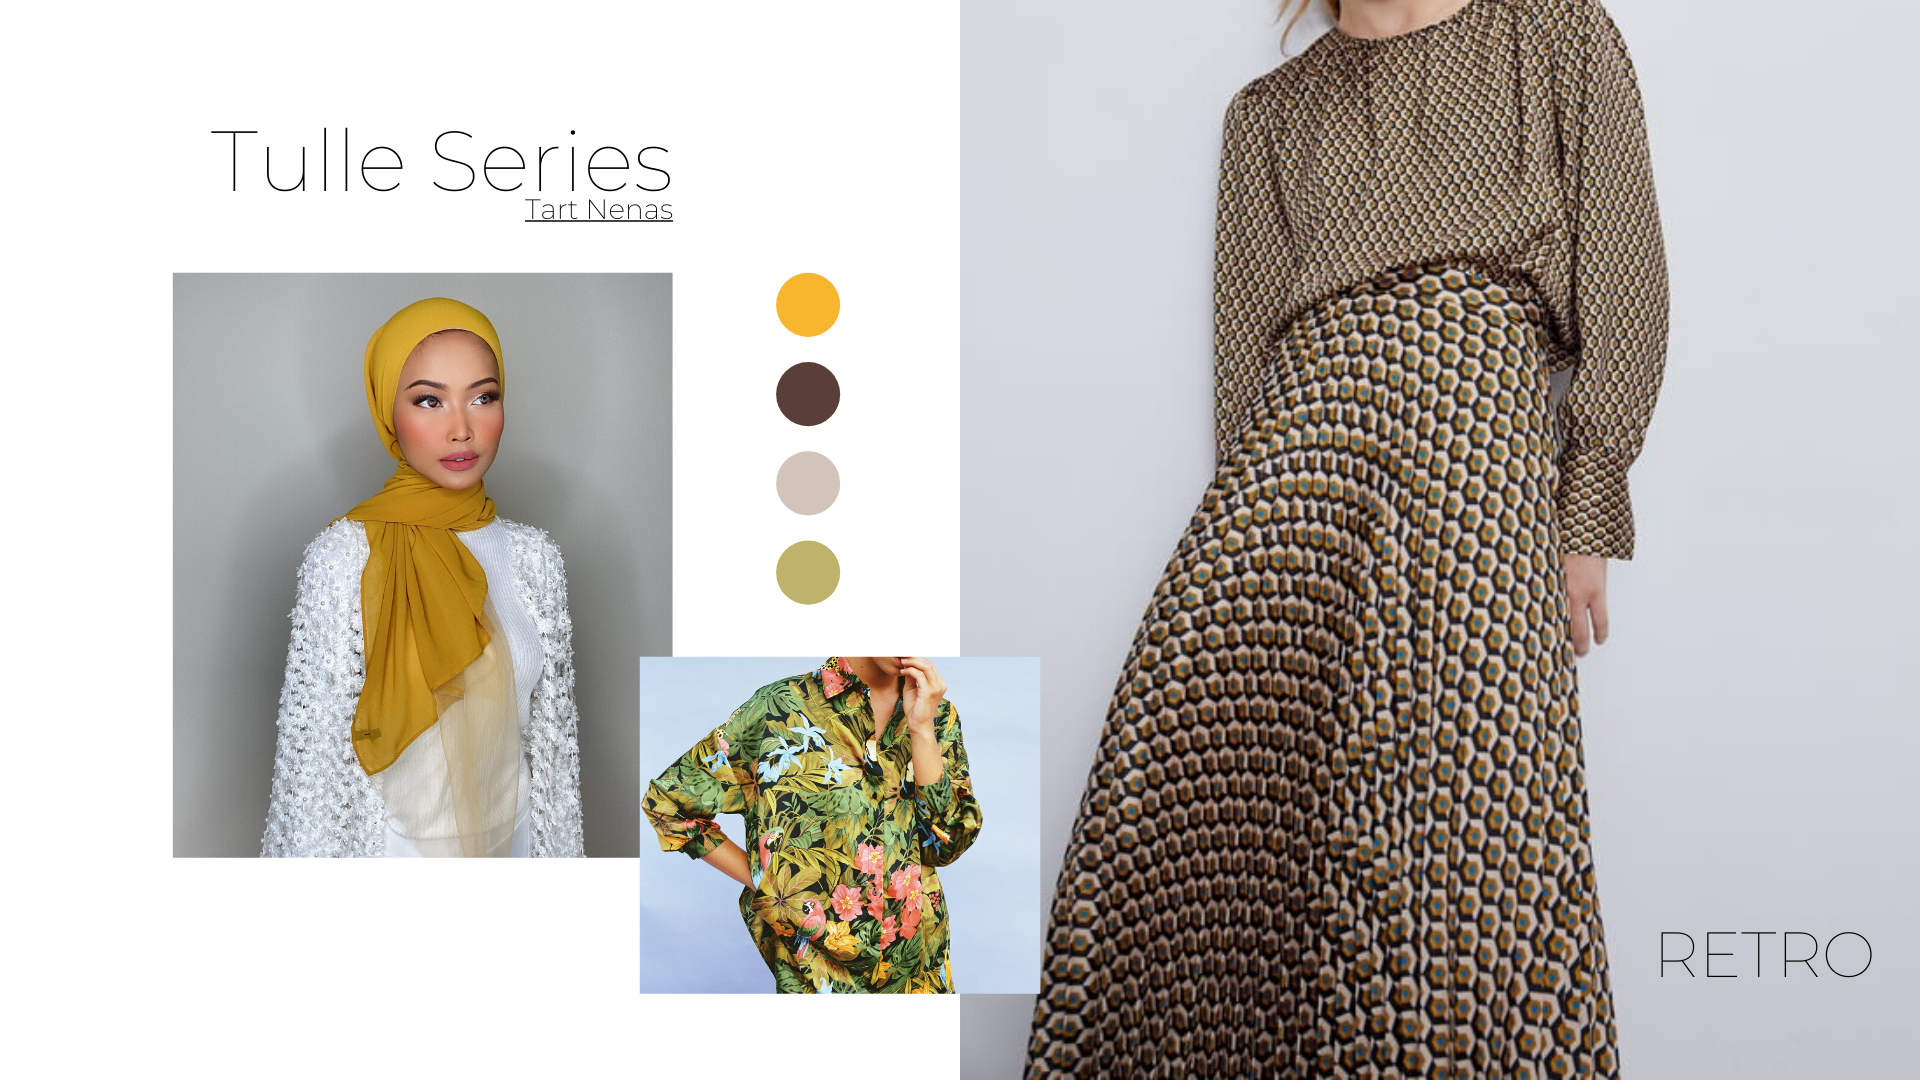 acupofdee, bloom, florals, hijab, modest fashion, style tip, lookbook, tulle series, yellow, retro, abstract, topical,